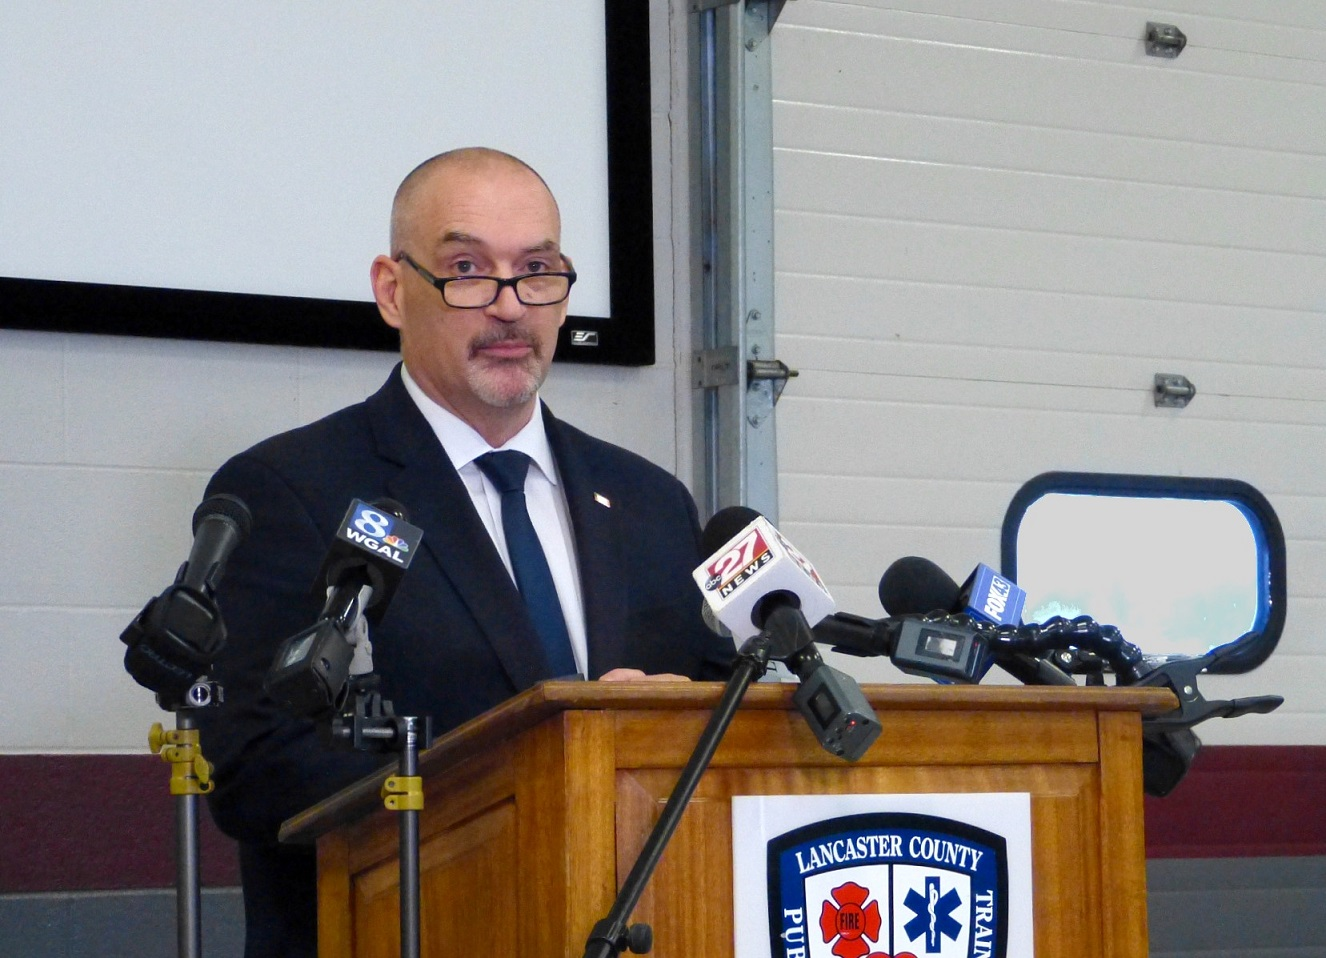 Lancaster County Commissioner Craig Lehman speaks at a media briefing at the county Public Safety Training Center on Thursday, Jan. 28, 2021. (Photo: Tim Stuhldreher)